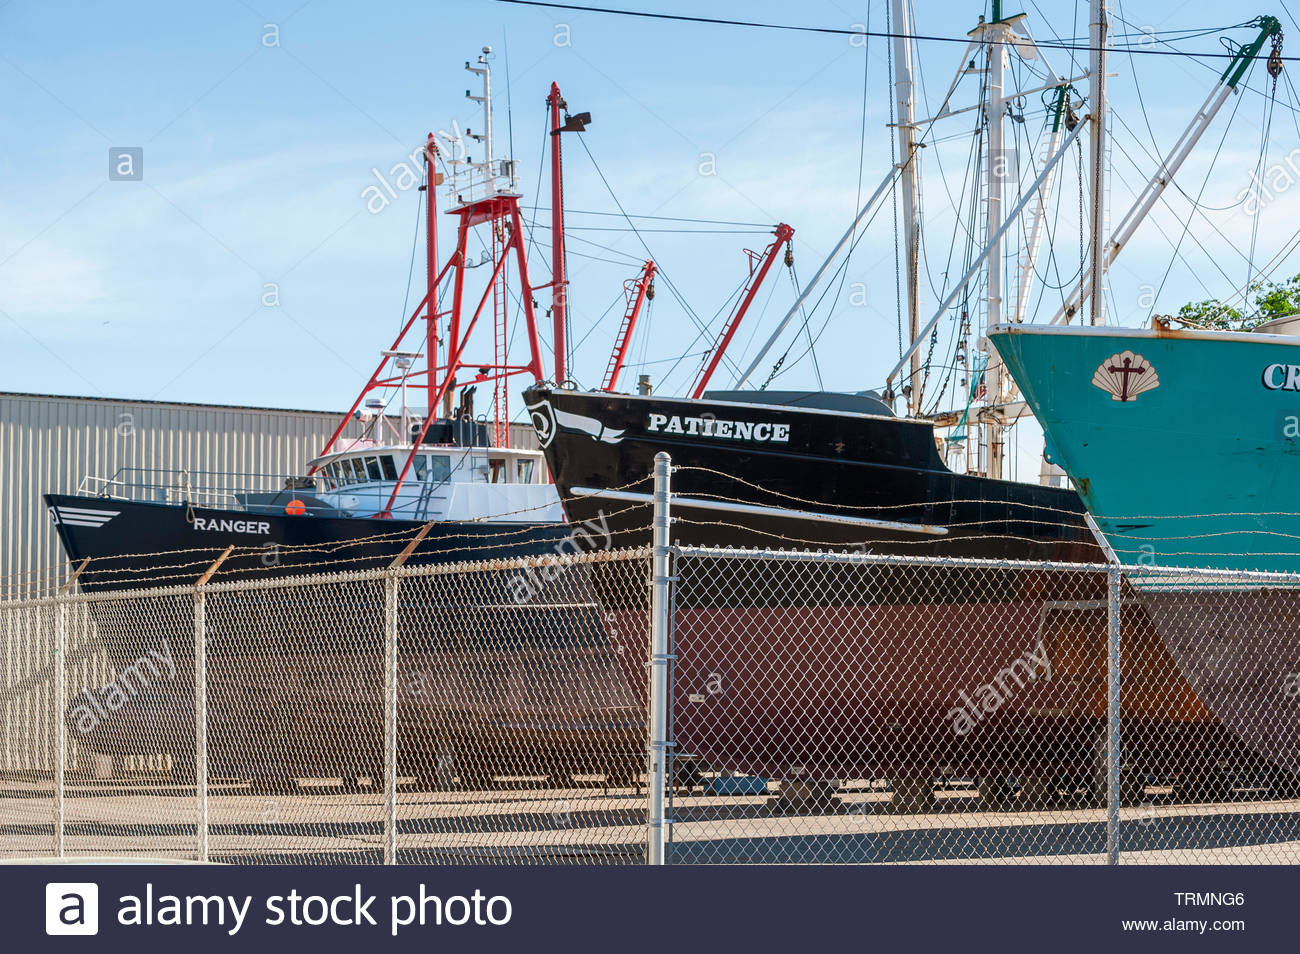 Fairhaven, Massachusetts, USA - June 9, 2019: Commercial fishing vessels Ranger, Patience and Crystal & Katie hauled out at Fairhaven Shipyard - Stock Image